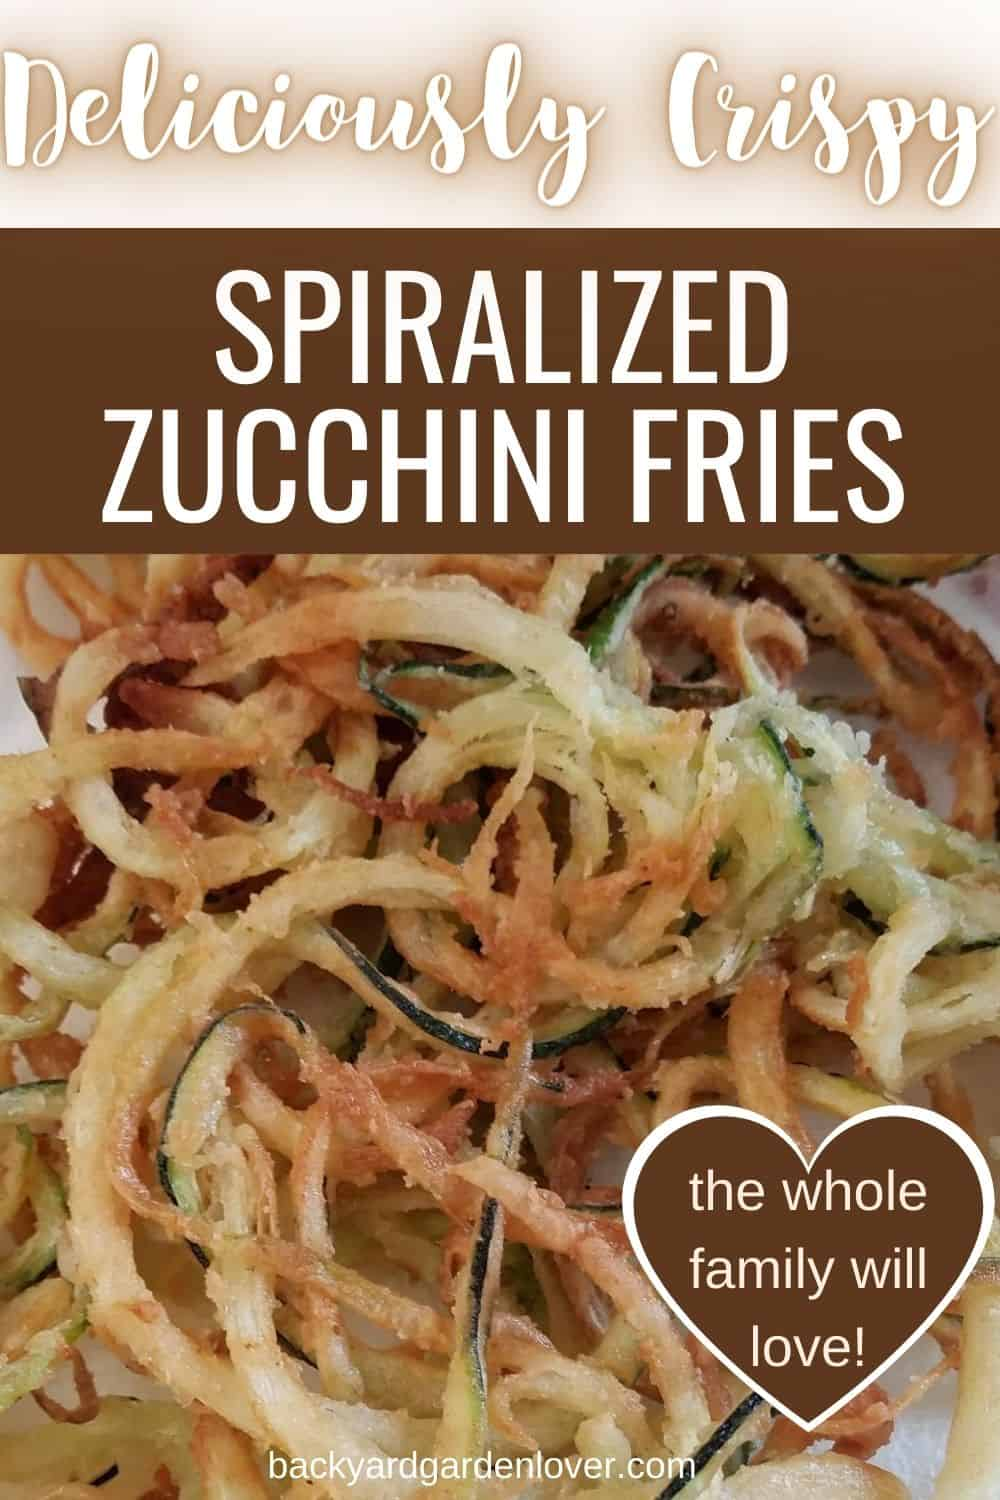 Crispy curly zucchini fries the whole family will love - Pinterest image